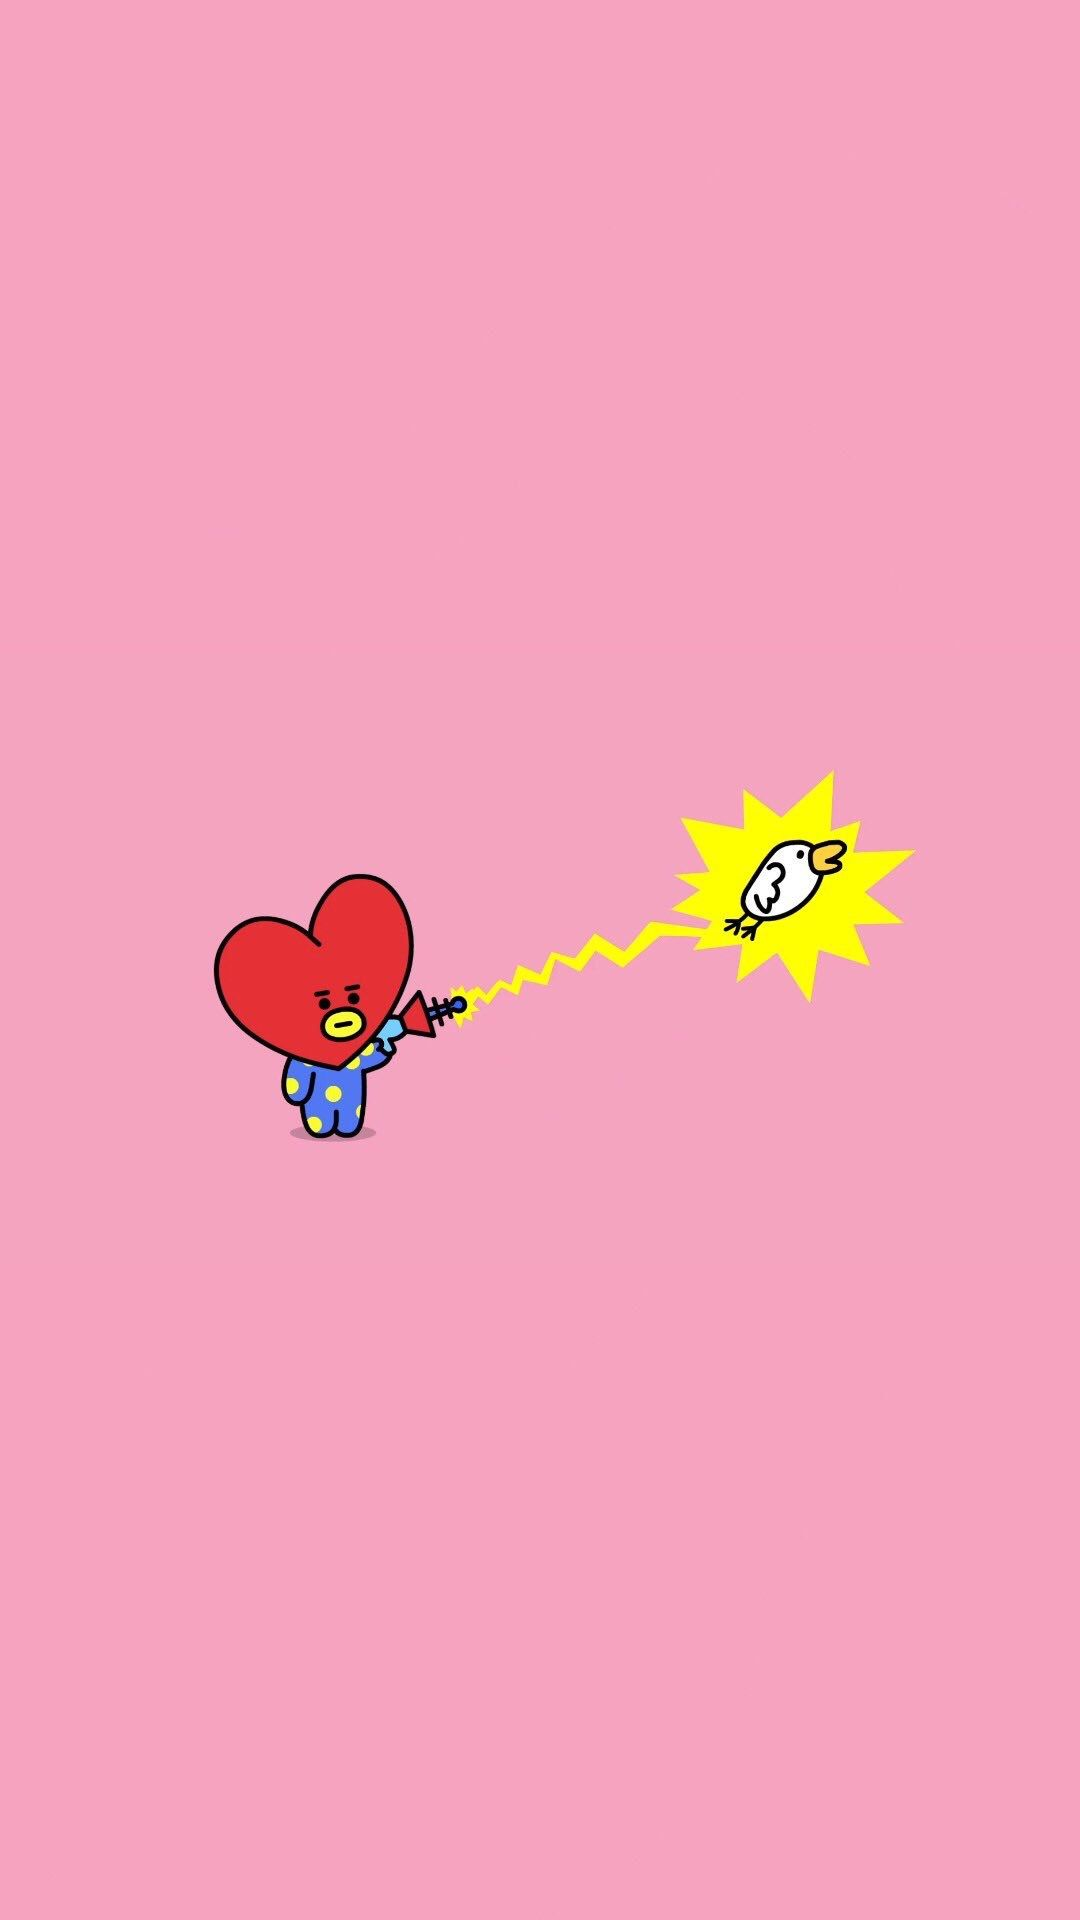 Wallpaper TATABT21 LINEBt21 Pinterest 1080x1920